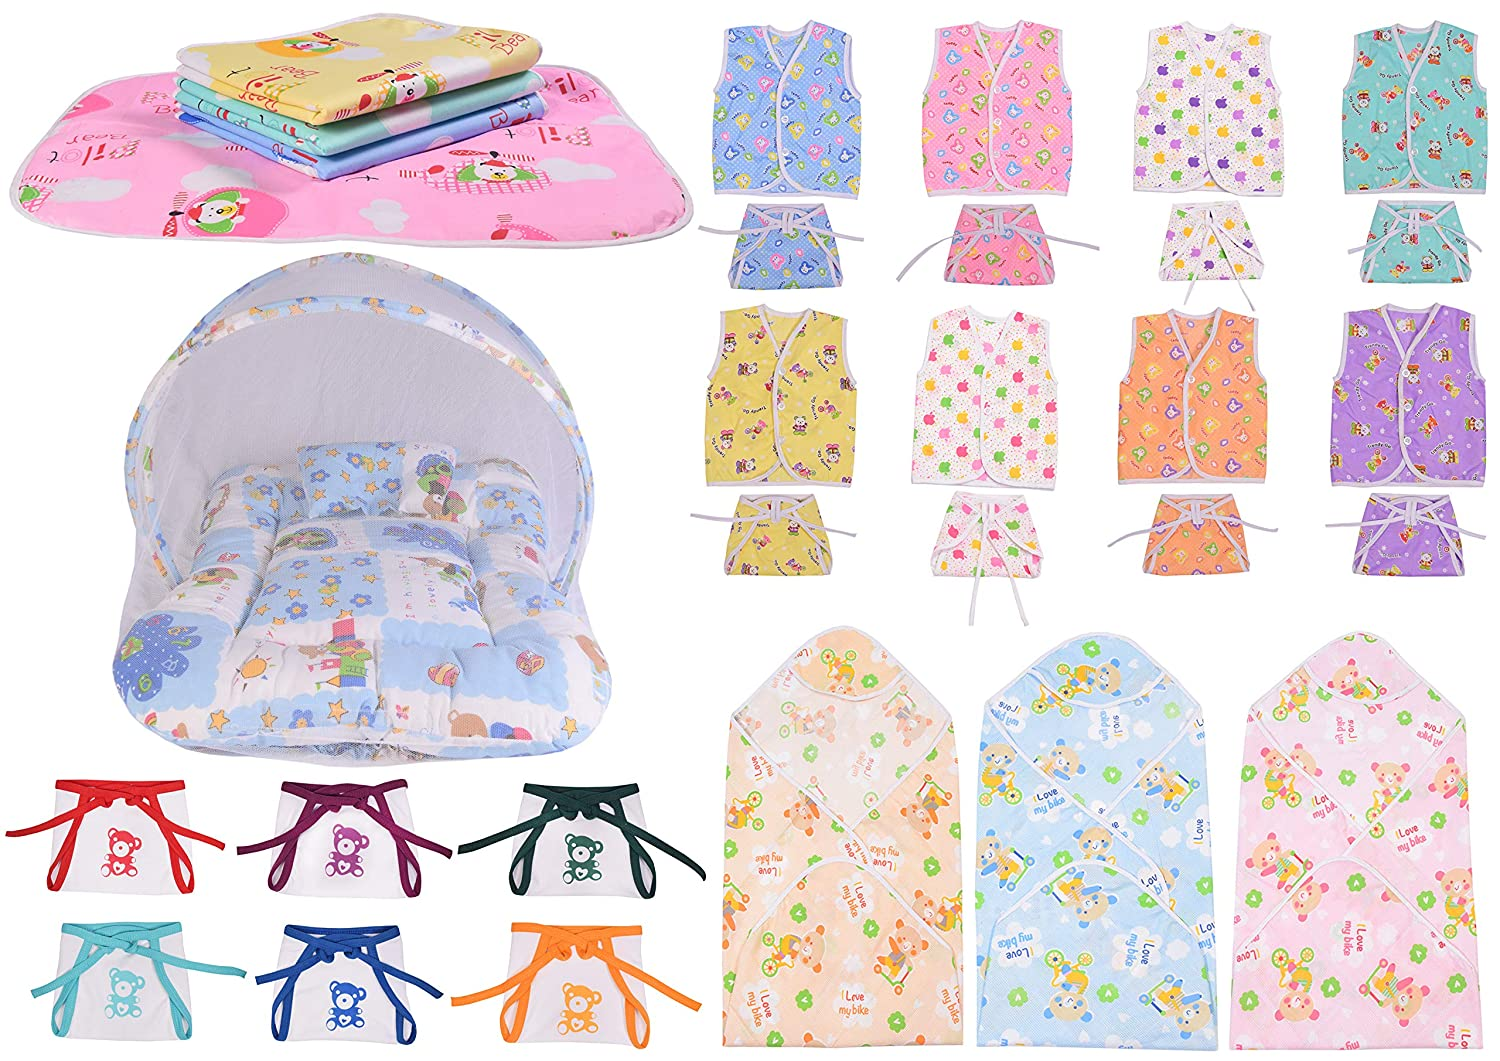 Baby Fly New Born Baby Combo of 8 Cotton Jhabla with 8 Cotton Nappies, 1 Net Bed, 6 Hosiery Nappies, 3 Blankets for Baby and 4 Plastic Mat Waterproof (0-6 Months)